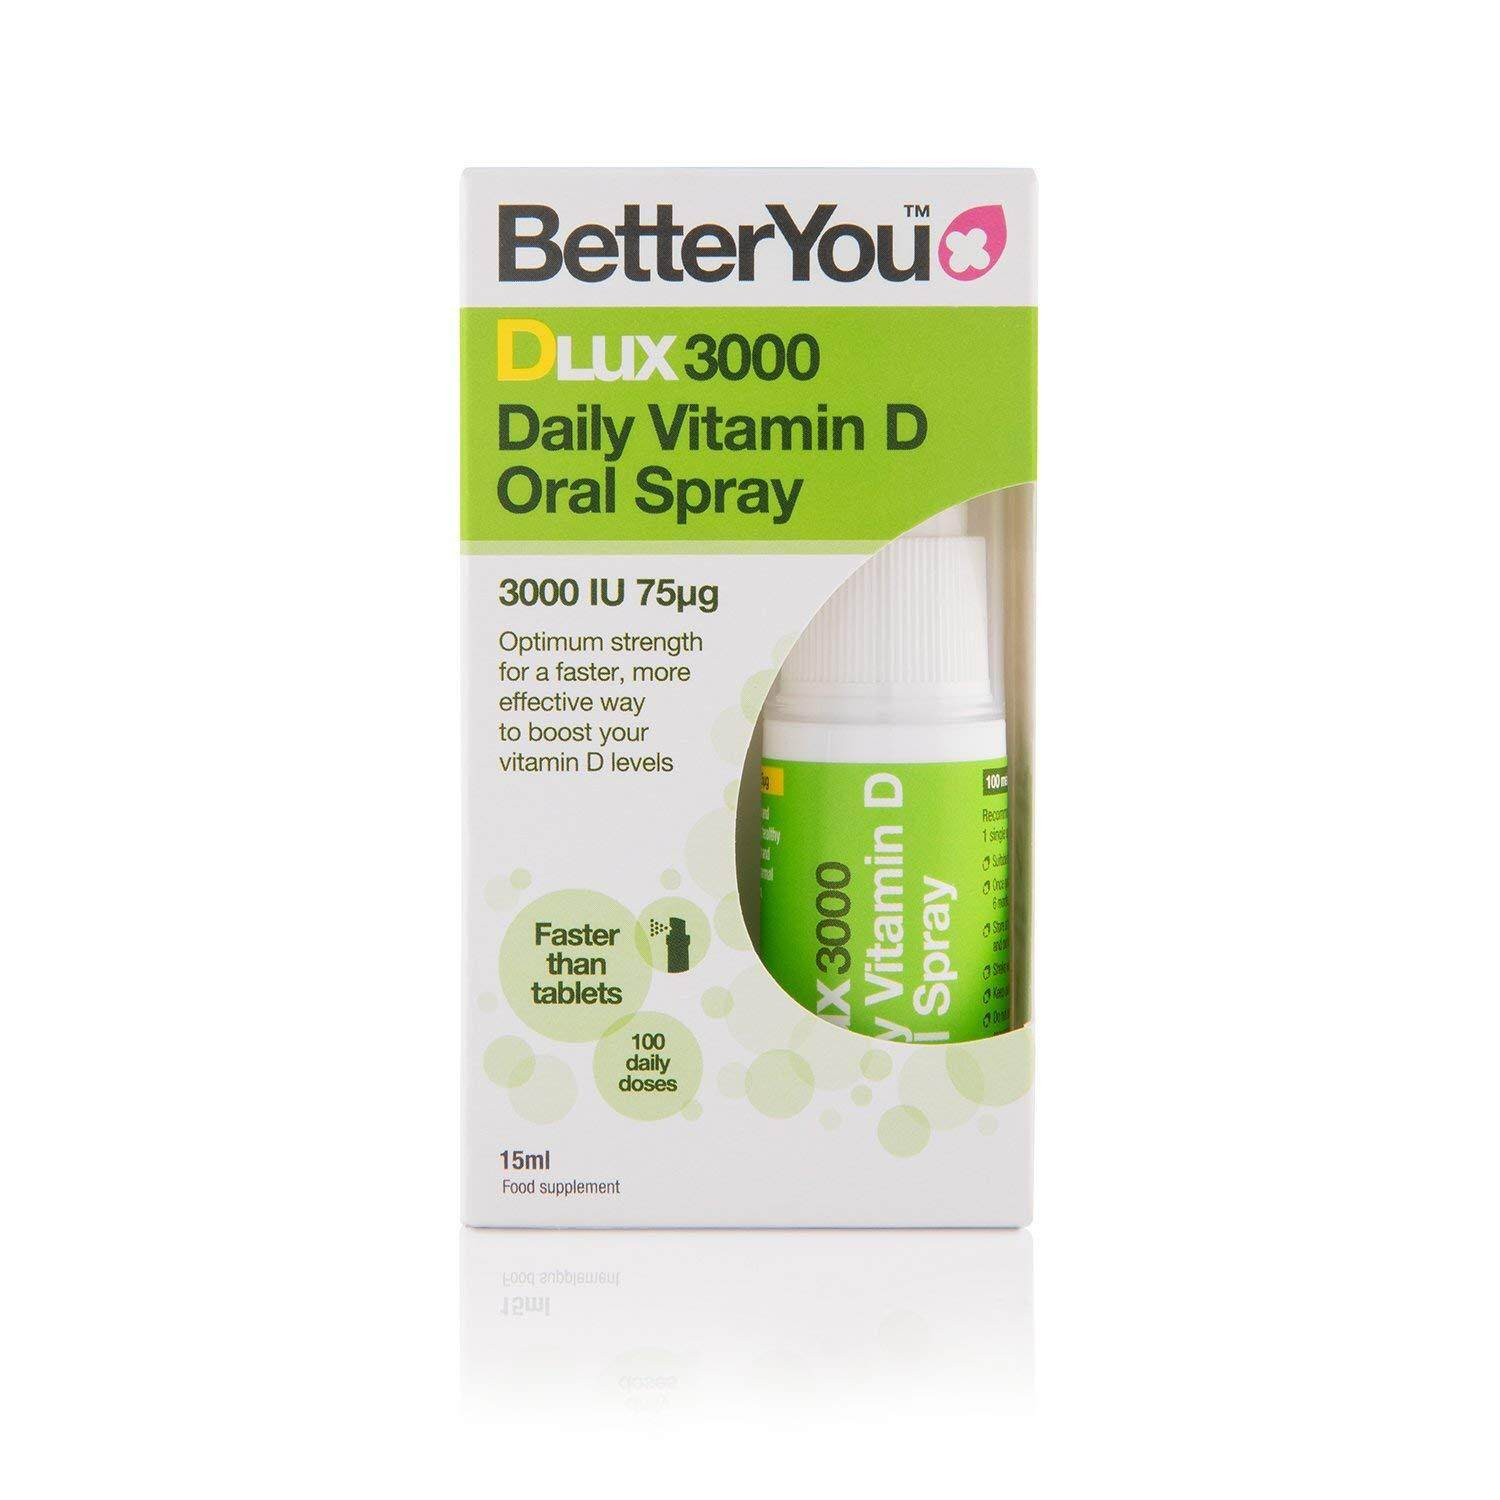 BetterYou Dlux Vitamin D Oral Spray 15ml